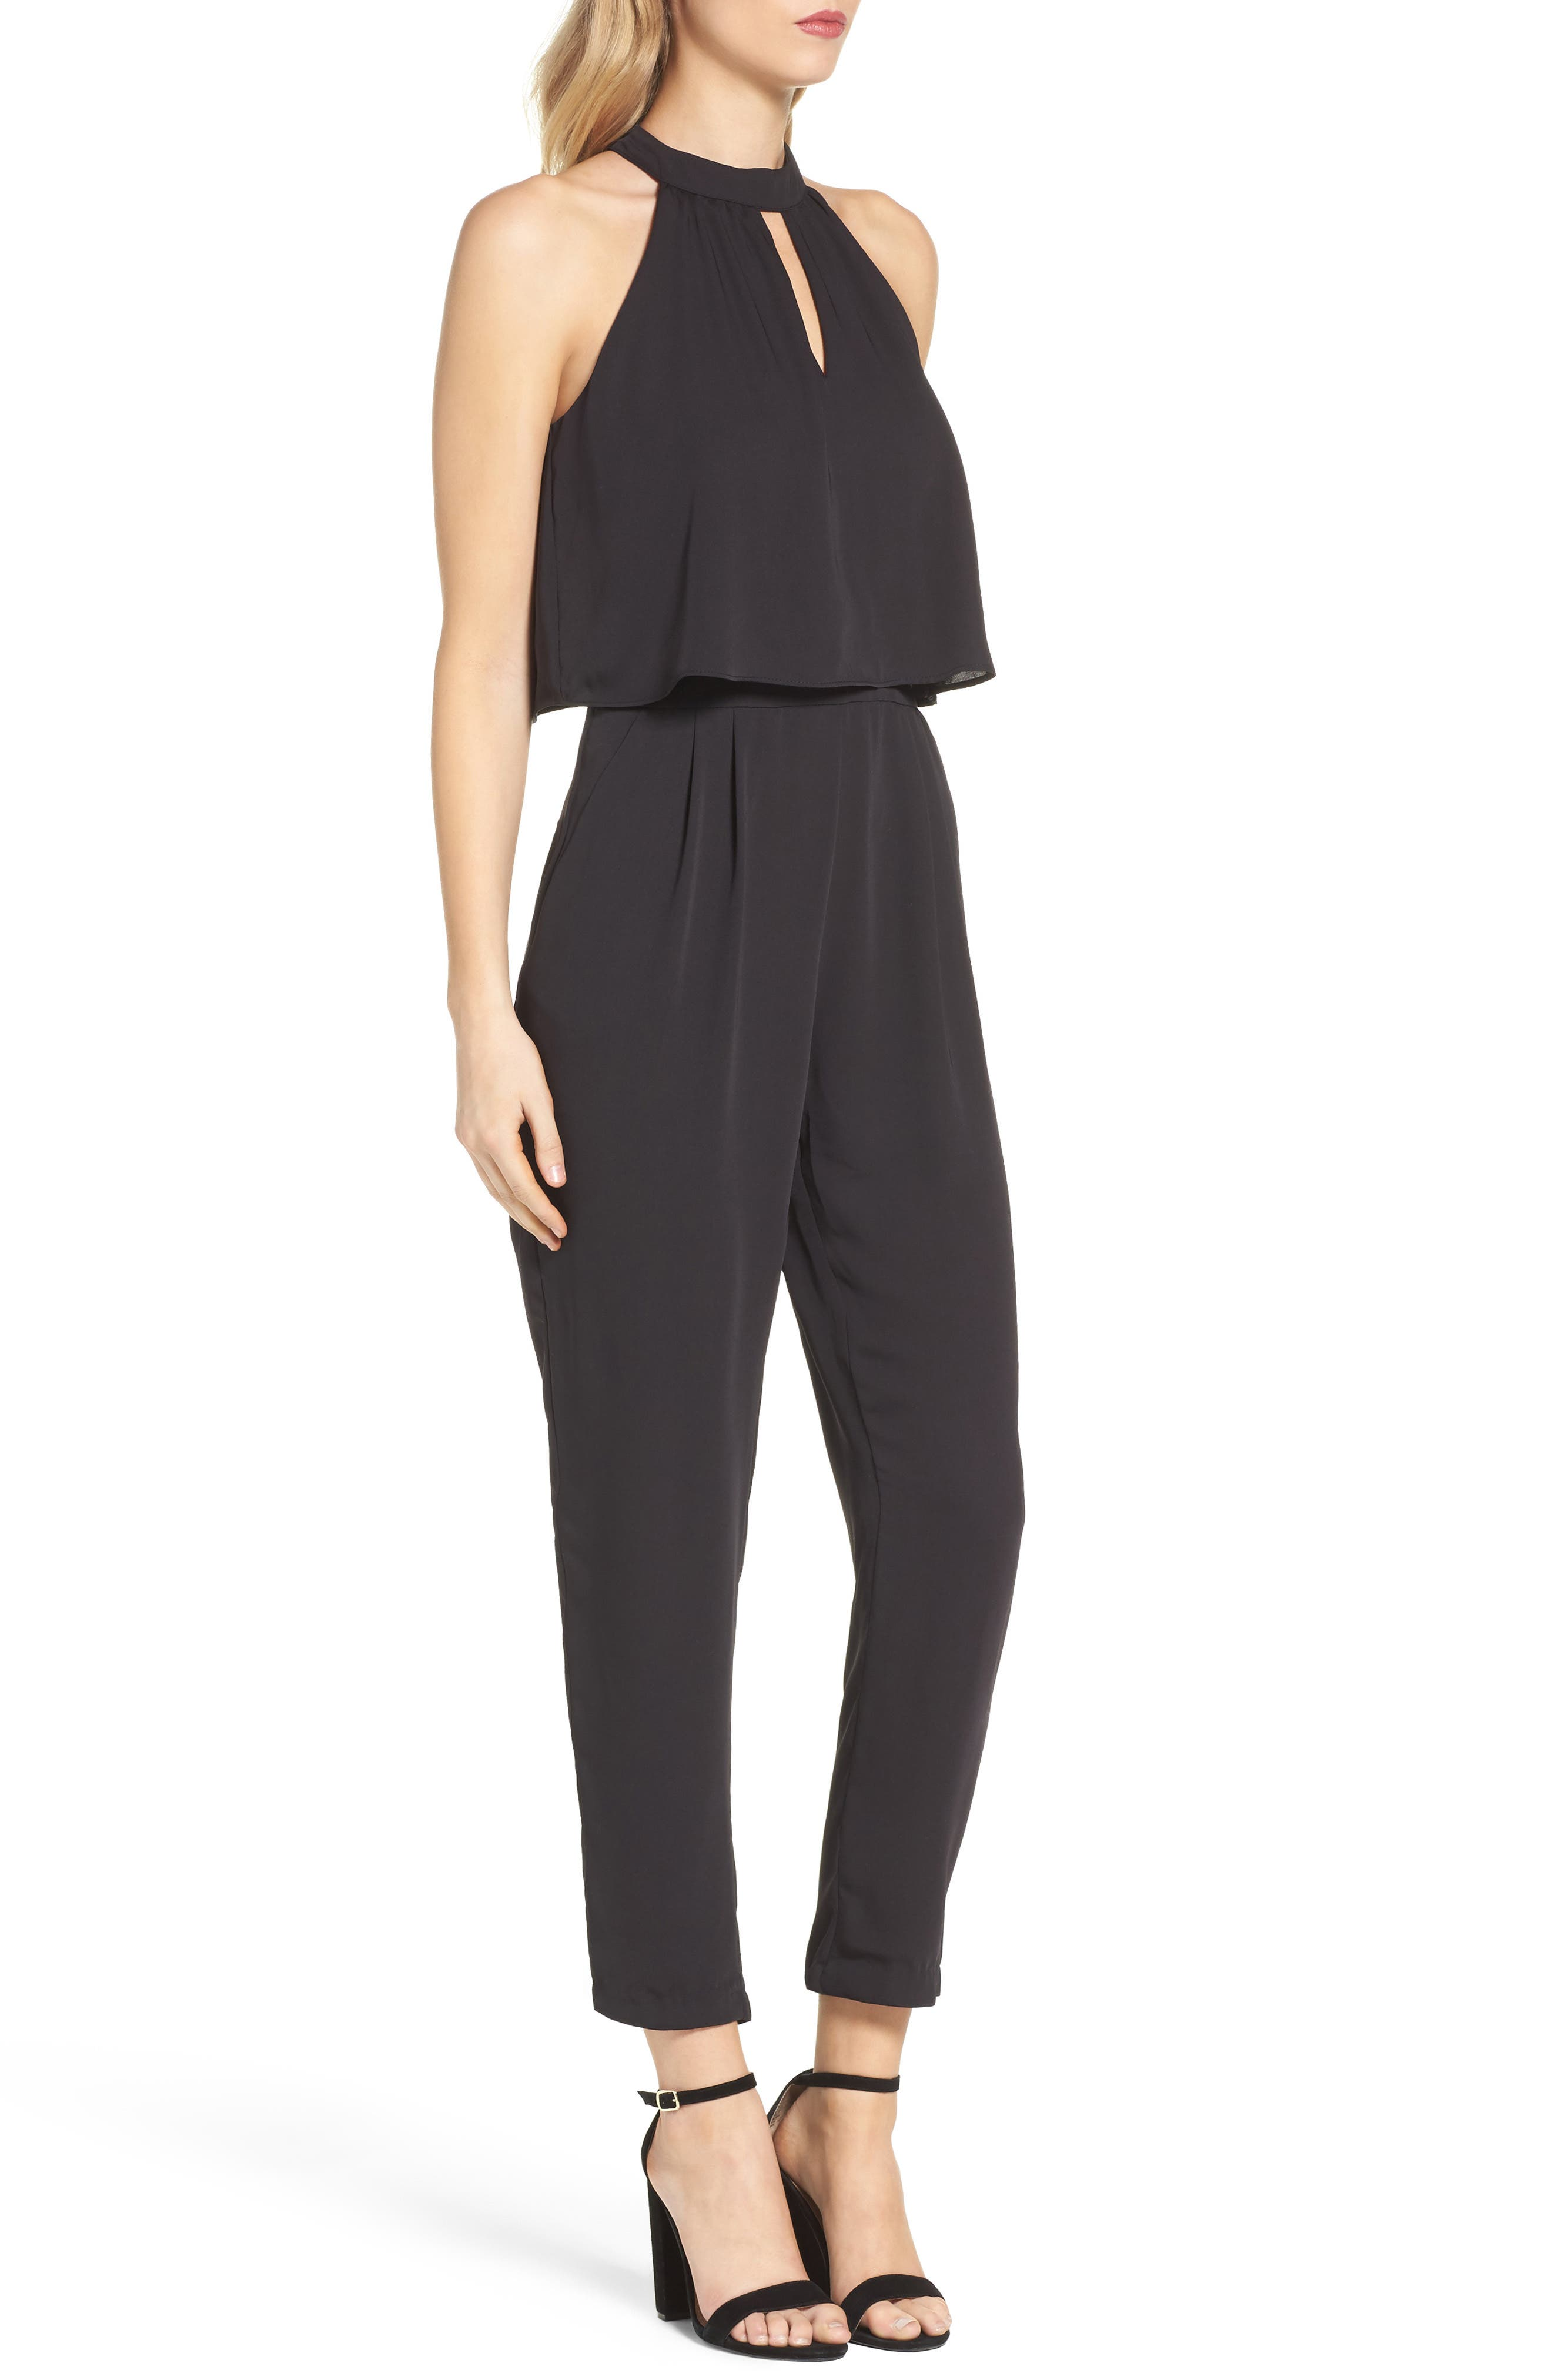 Nayden Popover Jumpsuit,                             Alternate thumbnail 3, color,                             Black